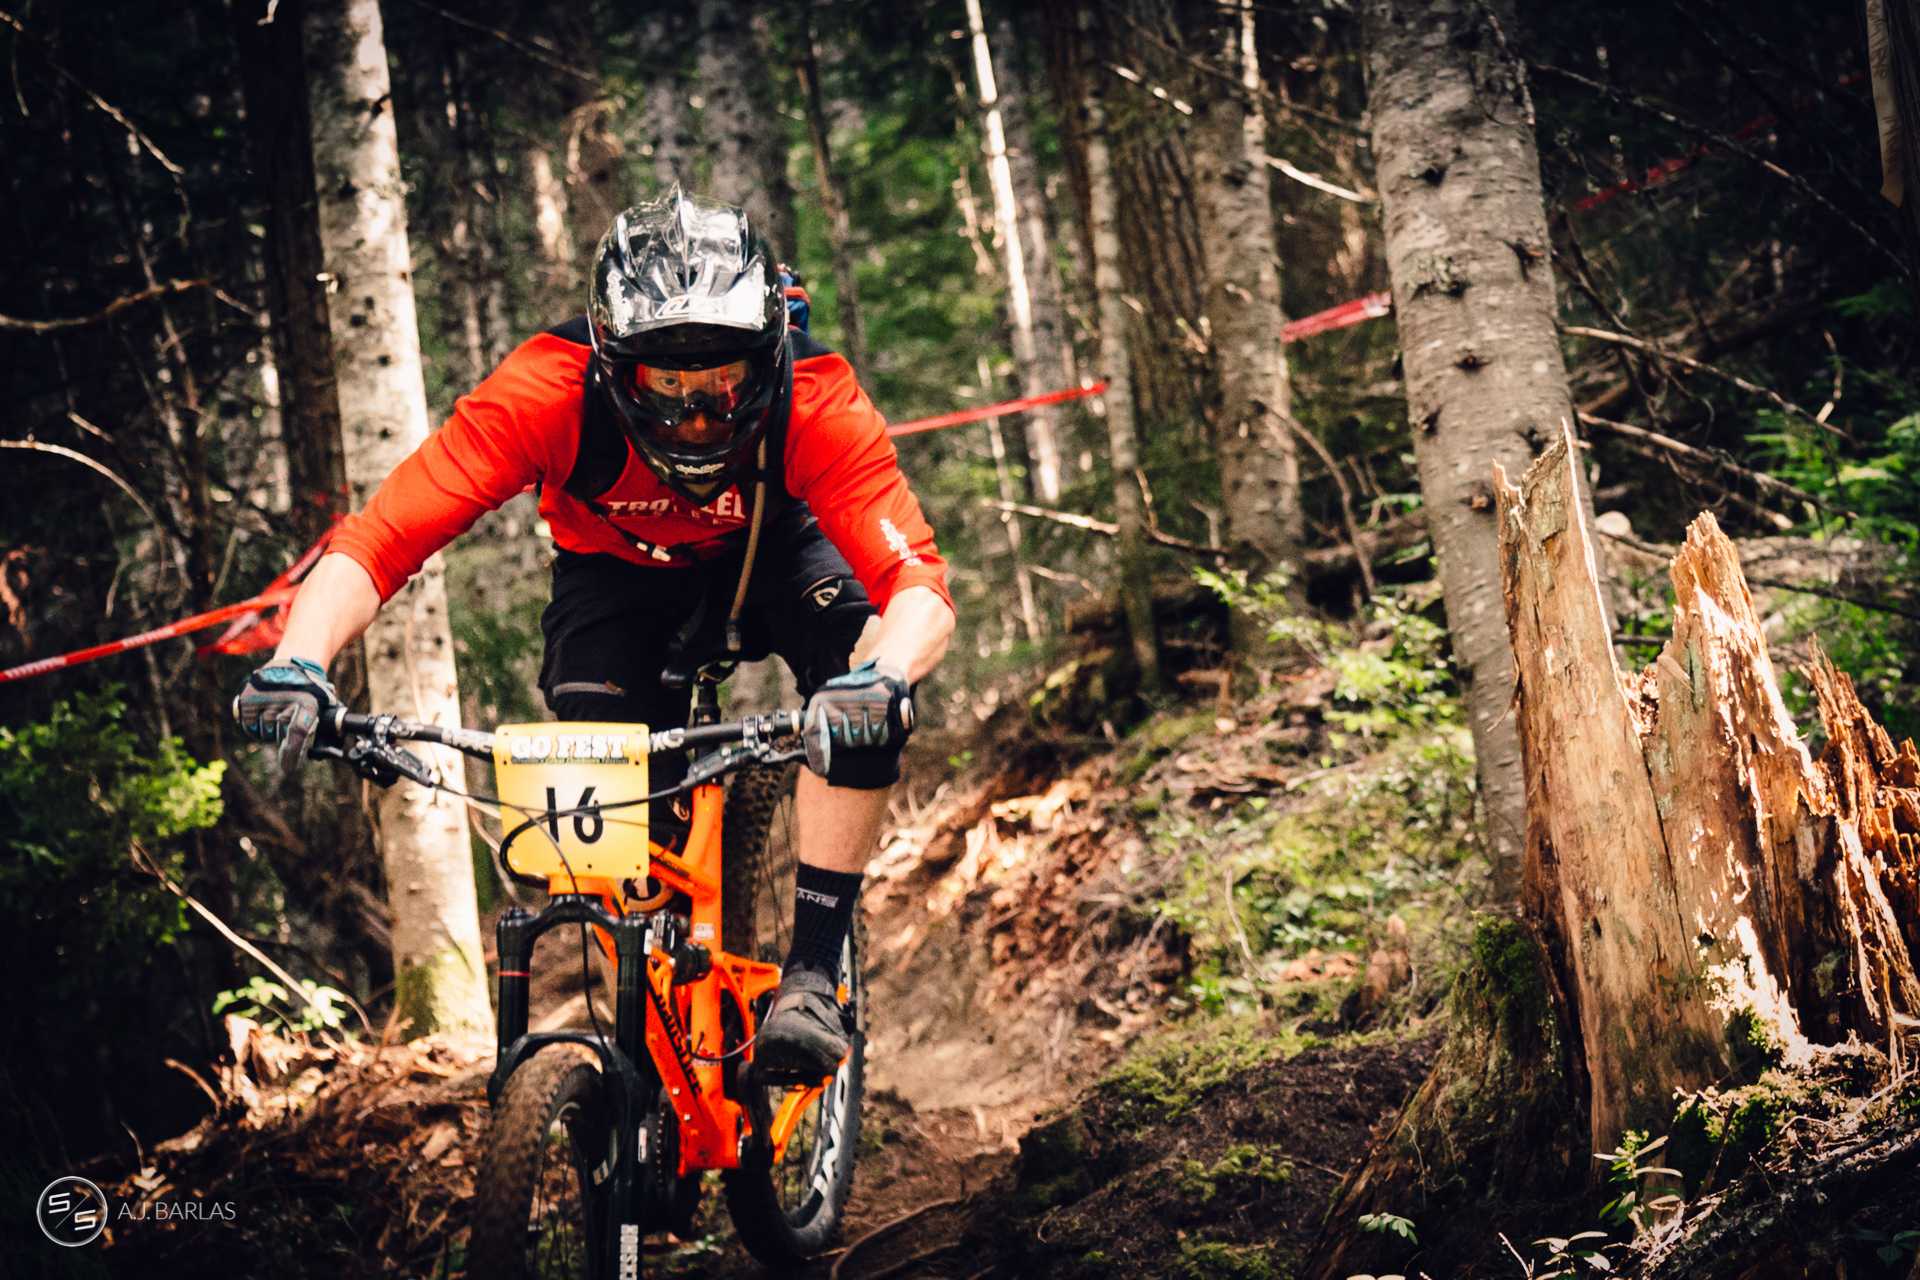 Shane Gayton at the Whistler NAET Enduro